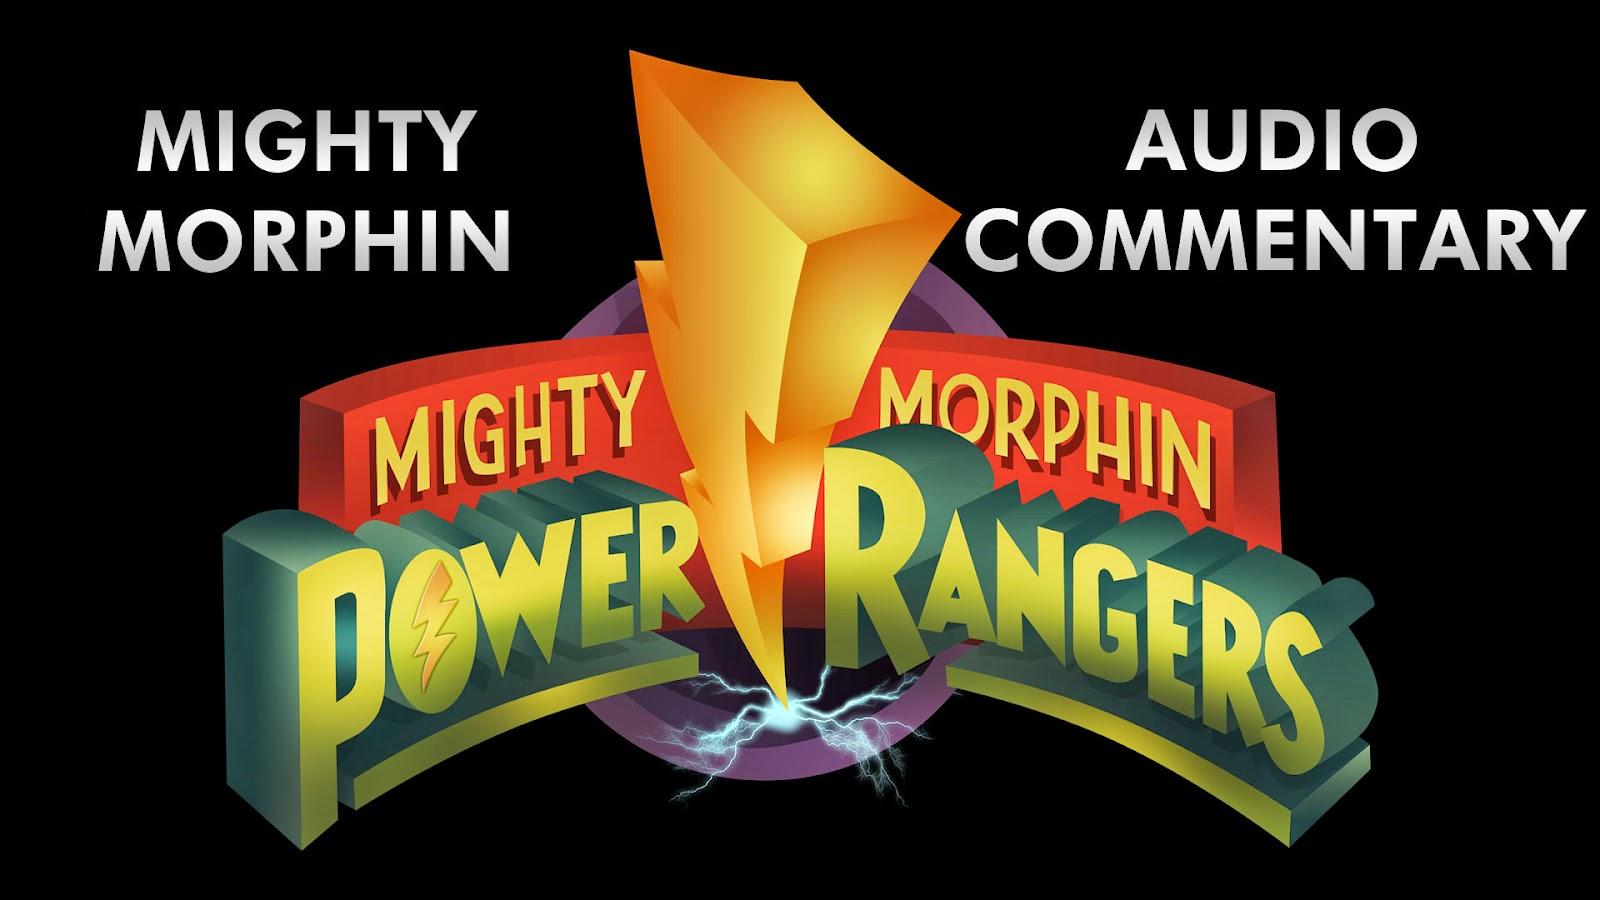 MMPR audio commentary Power Rangers Day of the Dumpster season 1 episode 1